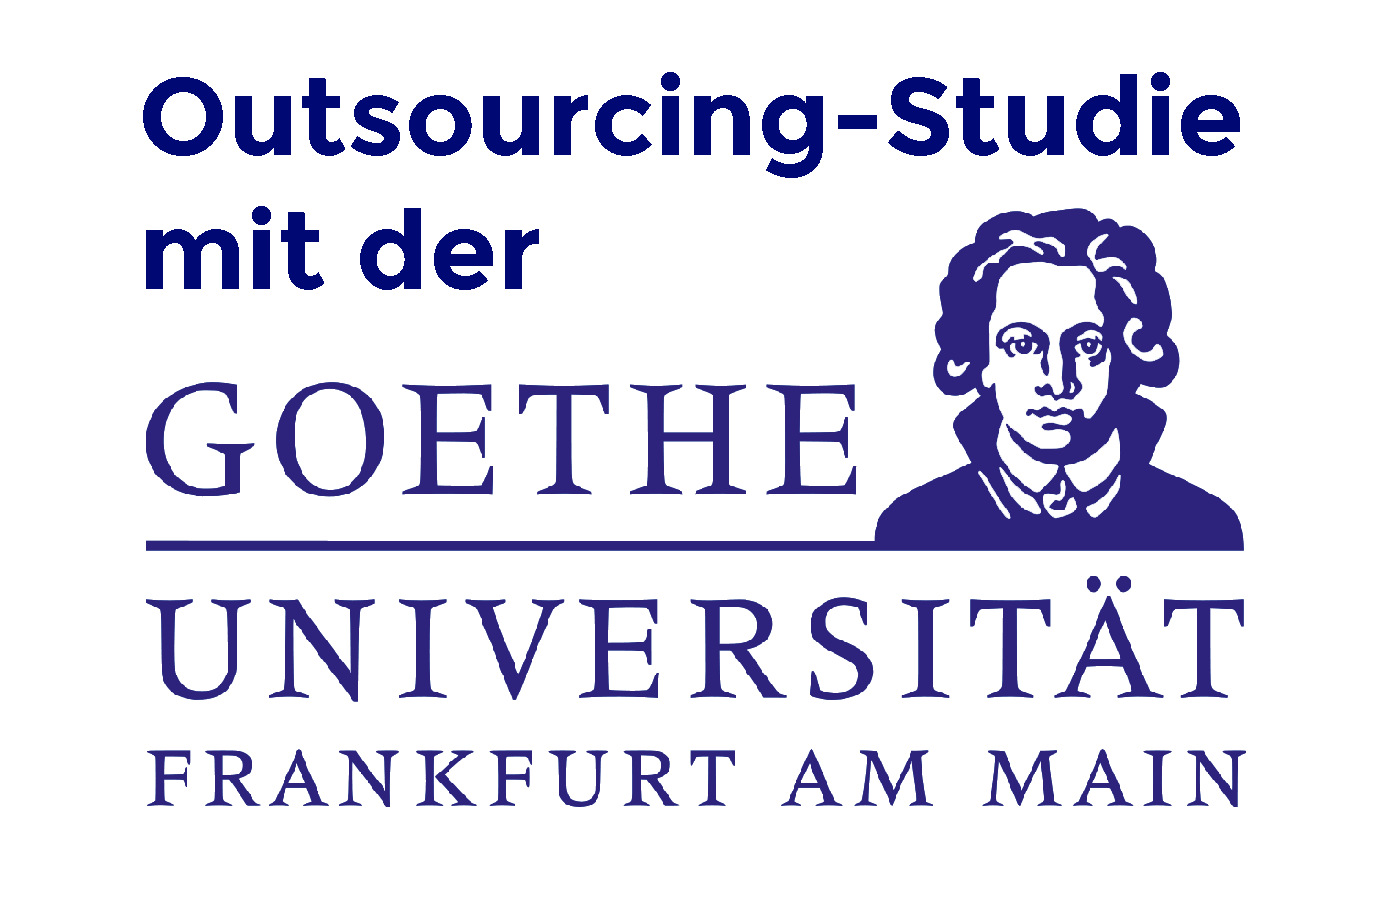 Outsourcing-Studie